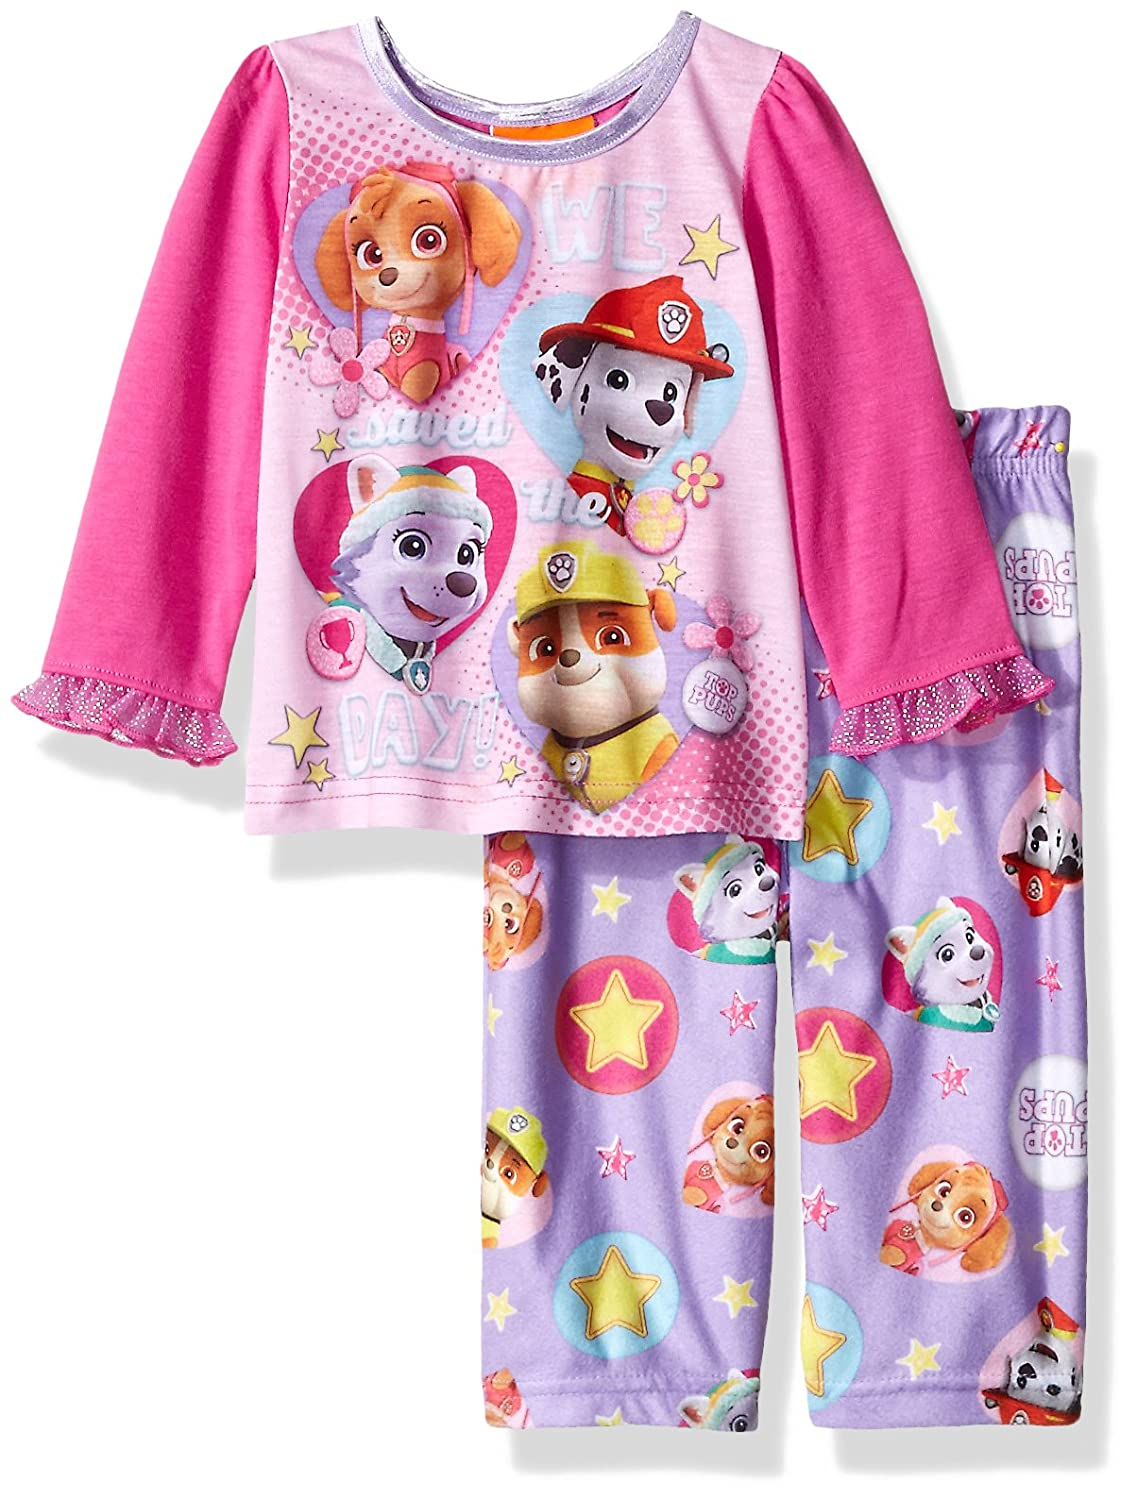 Cotrio Toddler Boys Kids Pajamas Cartoon 2 Piece Sleepwear Pjs Sets Home Wear Clothes Long Sleeve Outfit